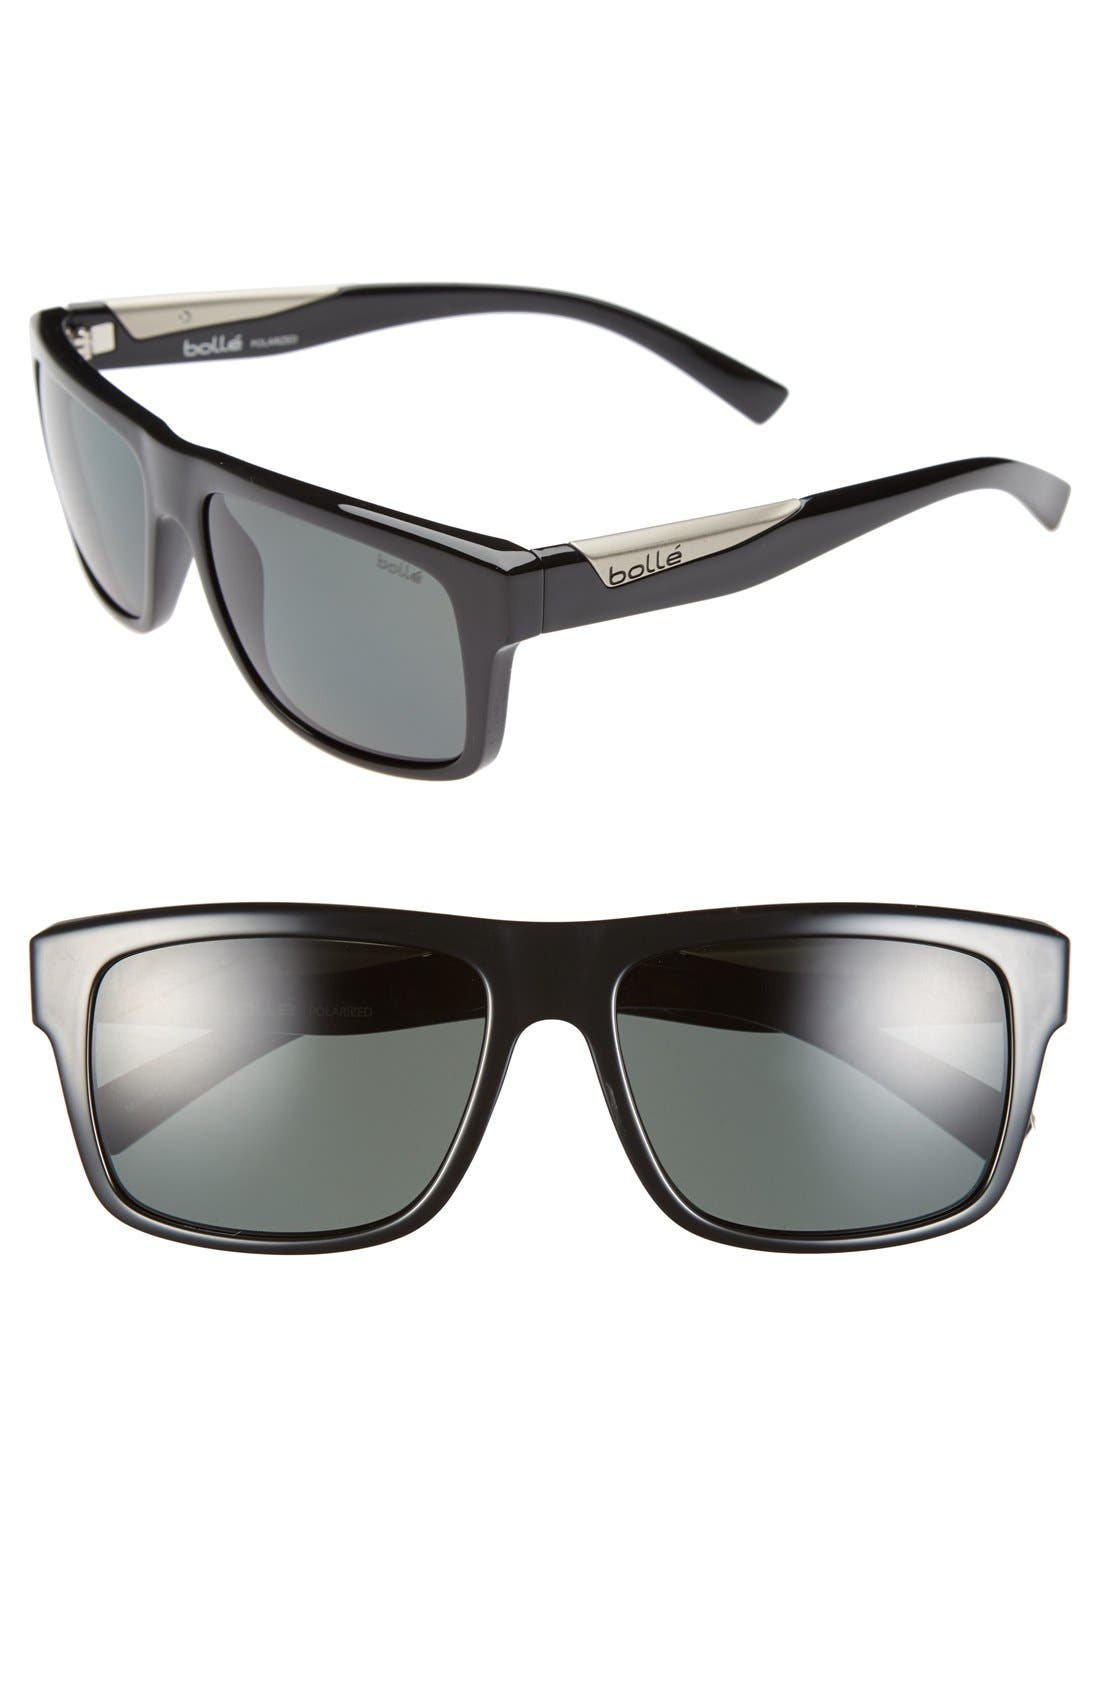 Alternate Image 1 Selected - Bolle 'Clint' 57mm Polarized Sunglasses